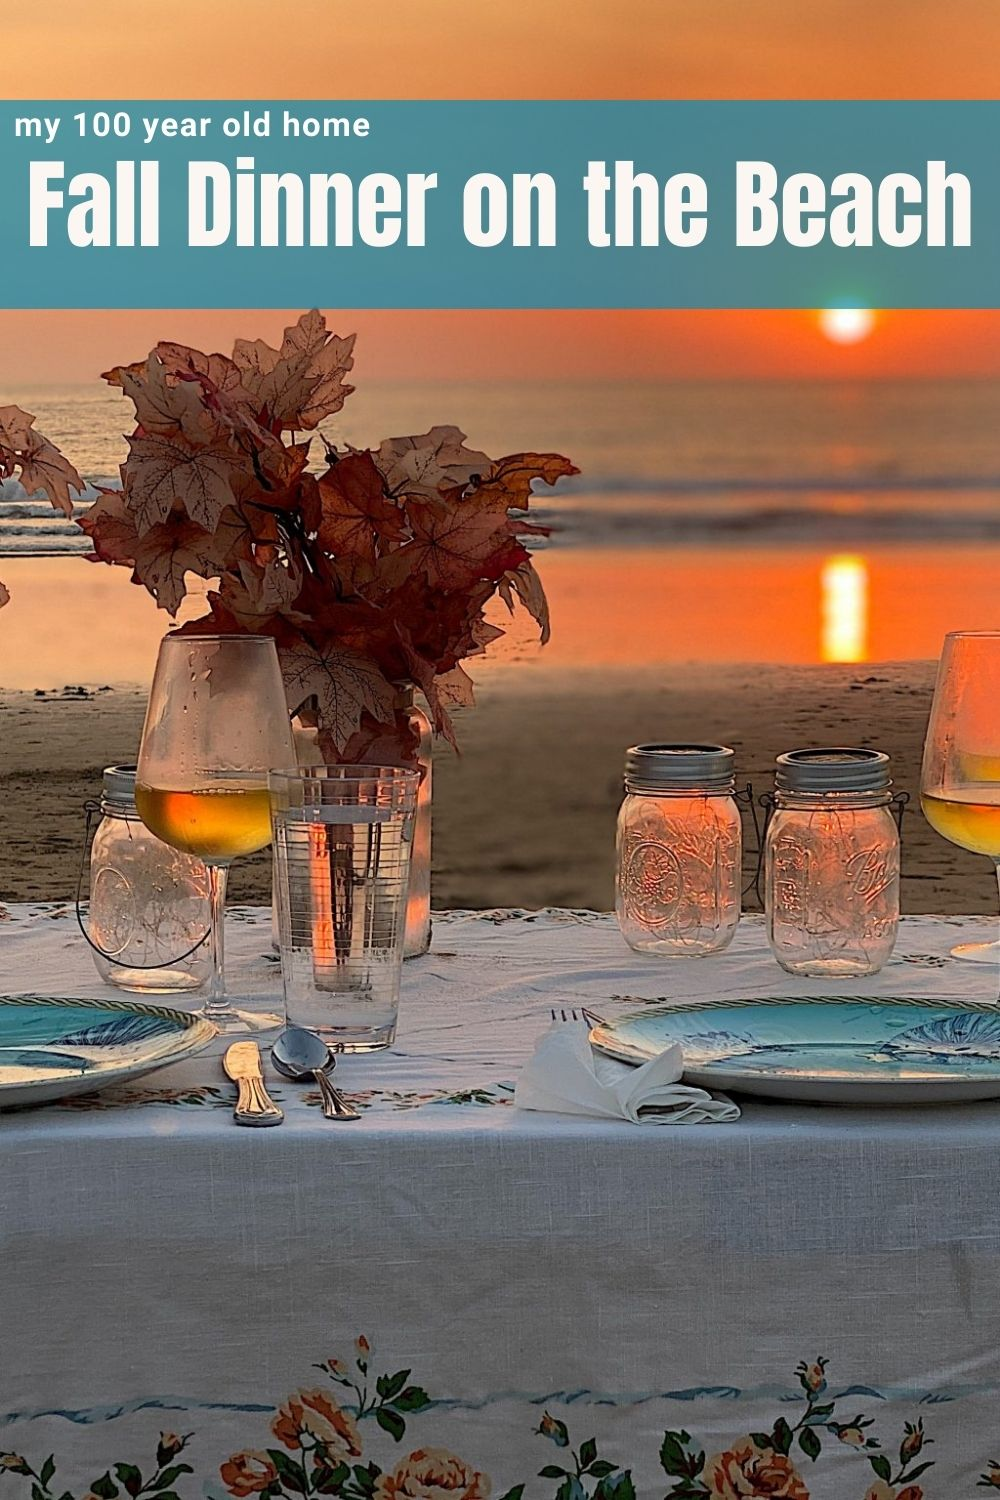 I love to entertain and serve dinner on the beach. The sunset provides an amazing backdrop for a fun dinner with girlfriends.